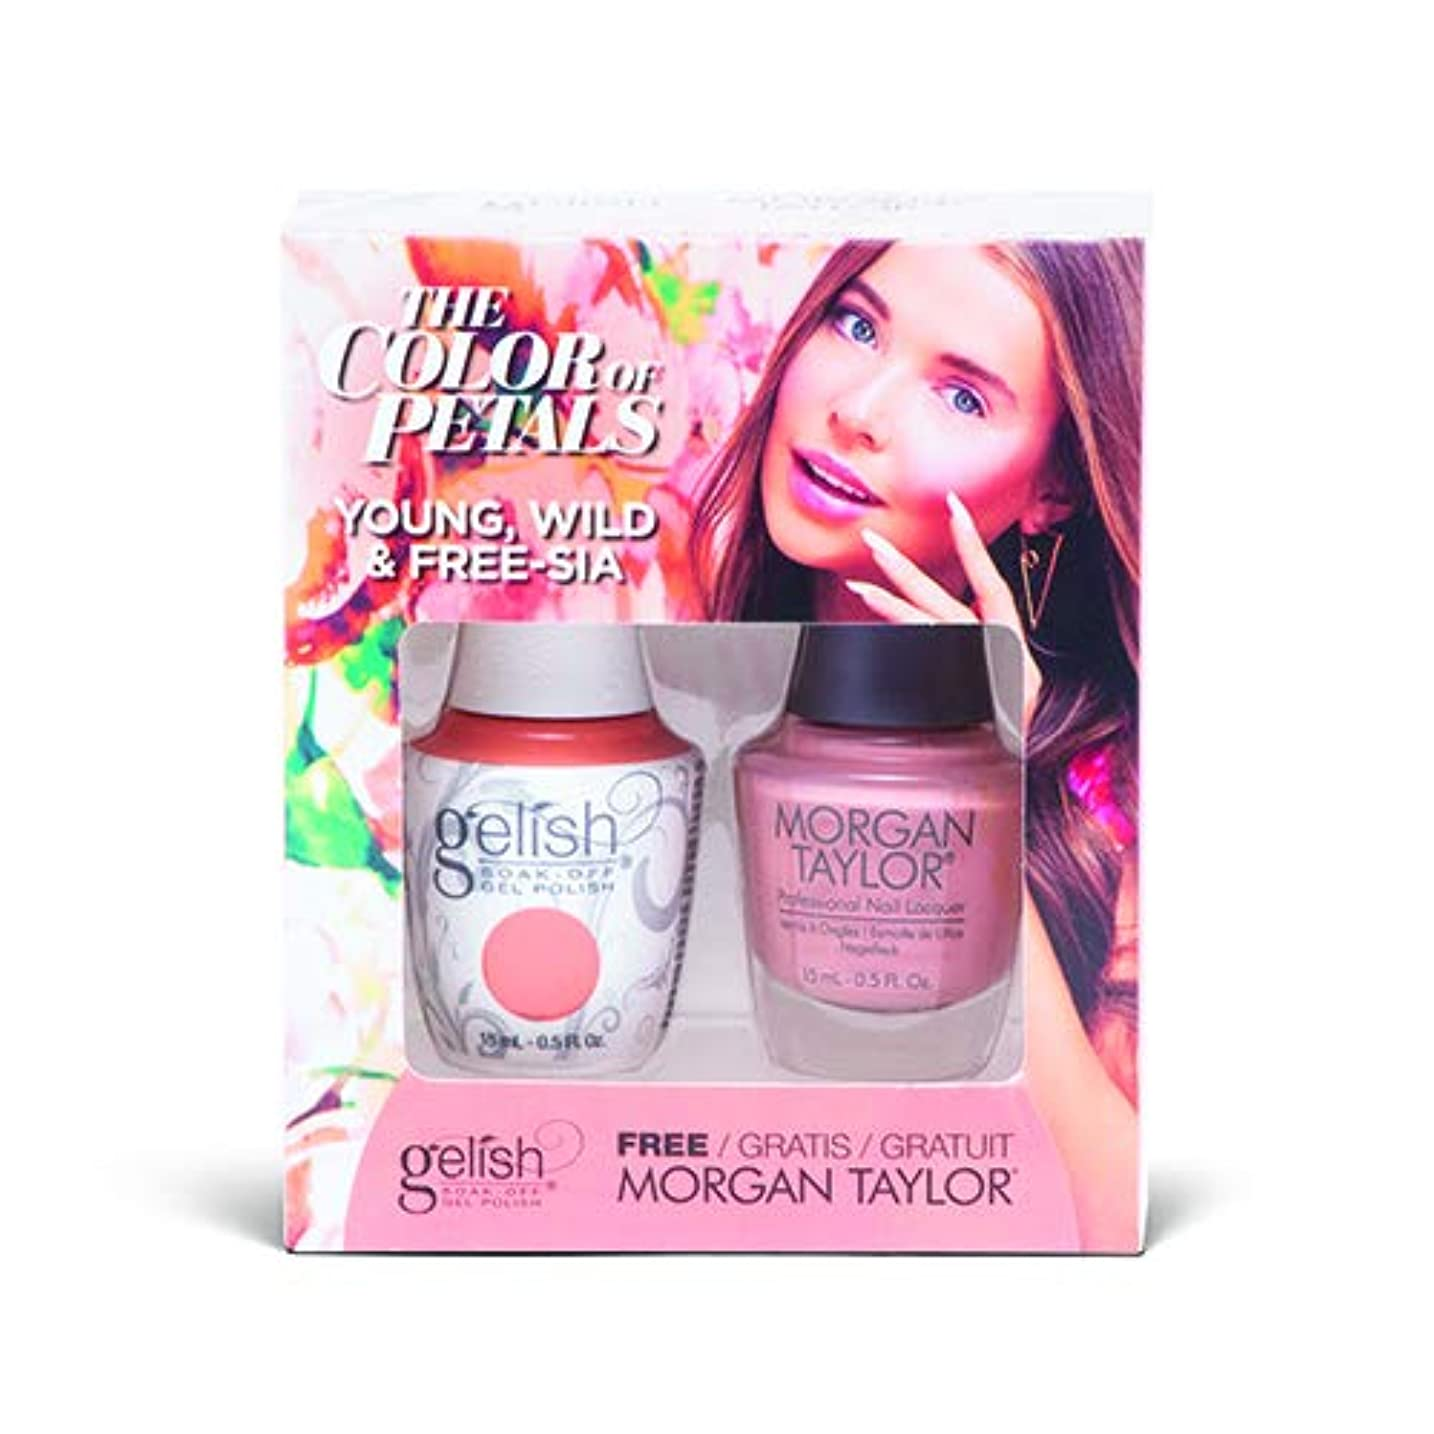 リフトスポット自分の力ですべてをするHarmony Gelish - Two Of A Kind - The Color Of Petals - Young, Wild & Free-sia - 15 mL / 0.5 Oz